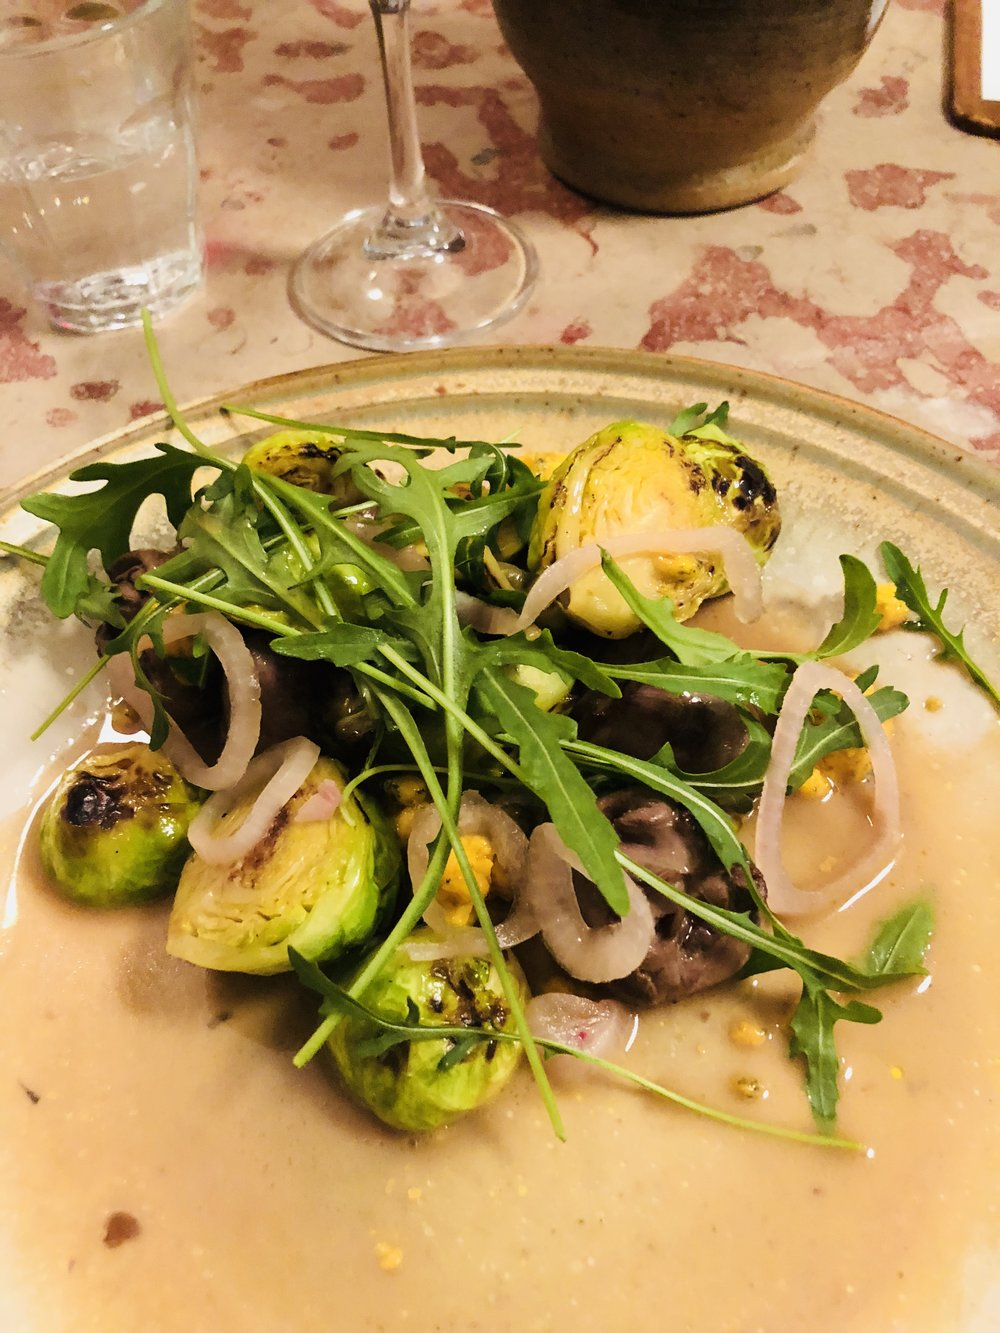 Sauteed Duck Hearts with Pan Roasted Brussels Sprouts, Pickled Onion, and Micro Greens